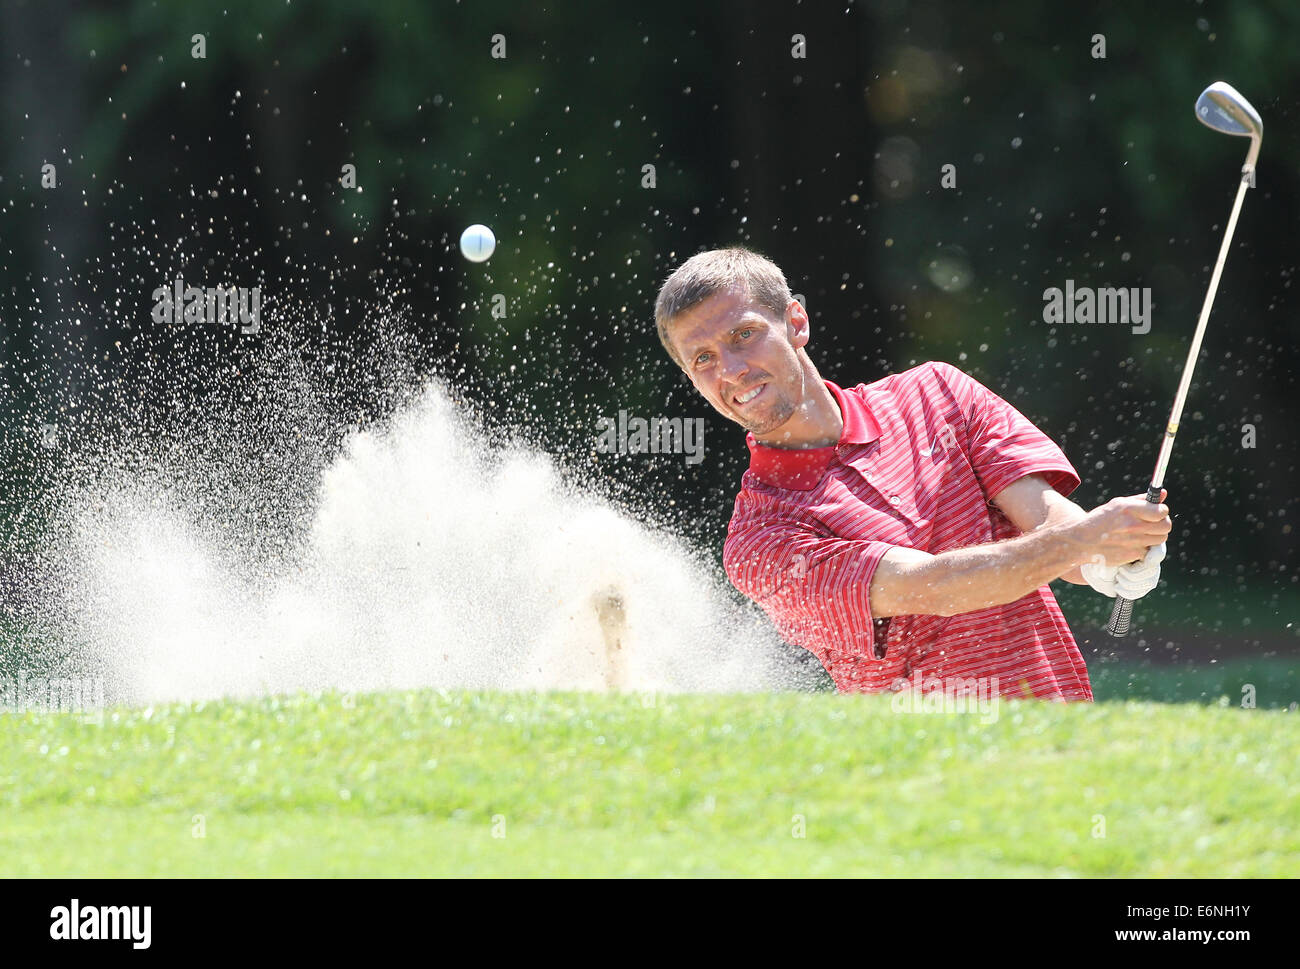 Gary O'Neil plays a shot out of a bunker during the EuroPro Golf Tournament 2012 at Bovey Castle, Devon - Stock Image